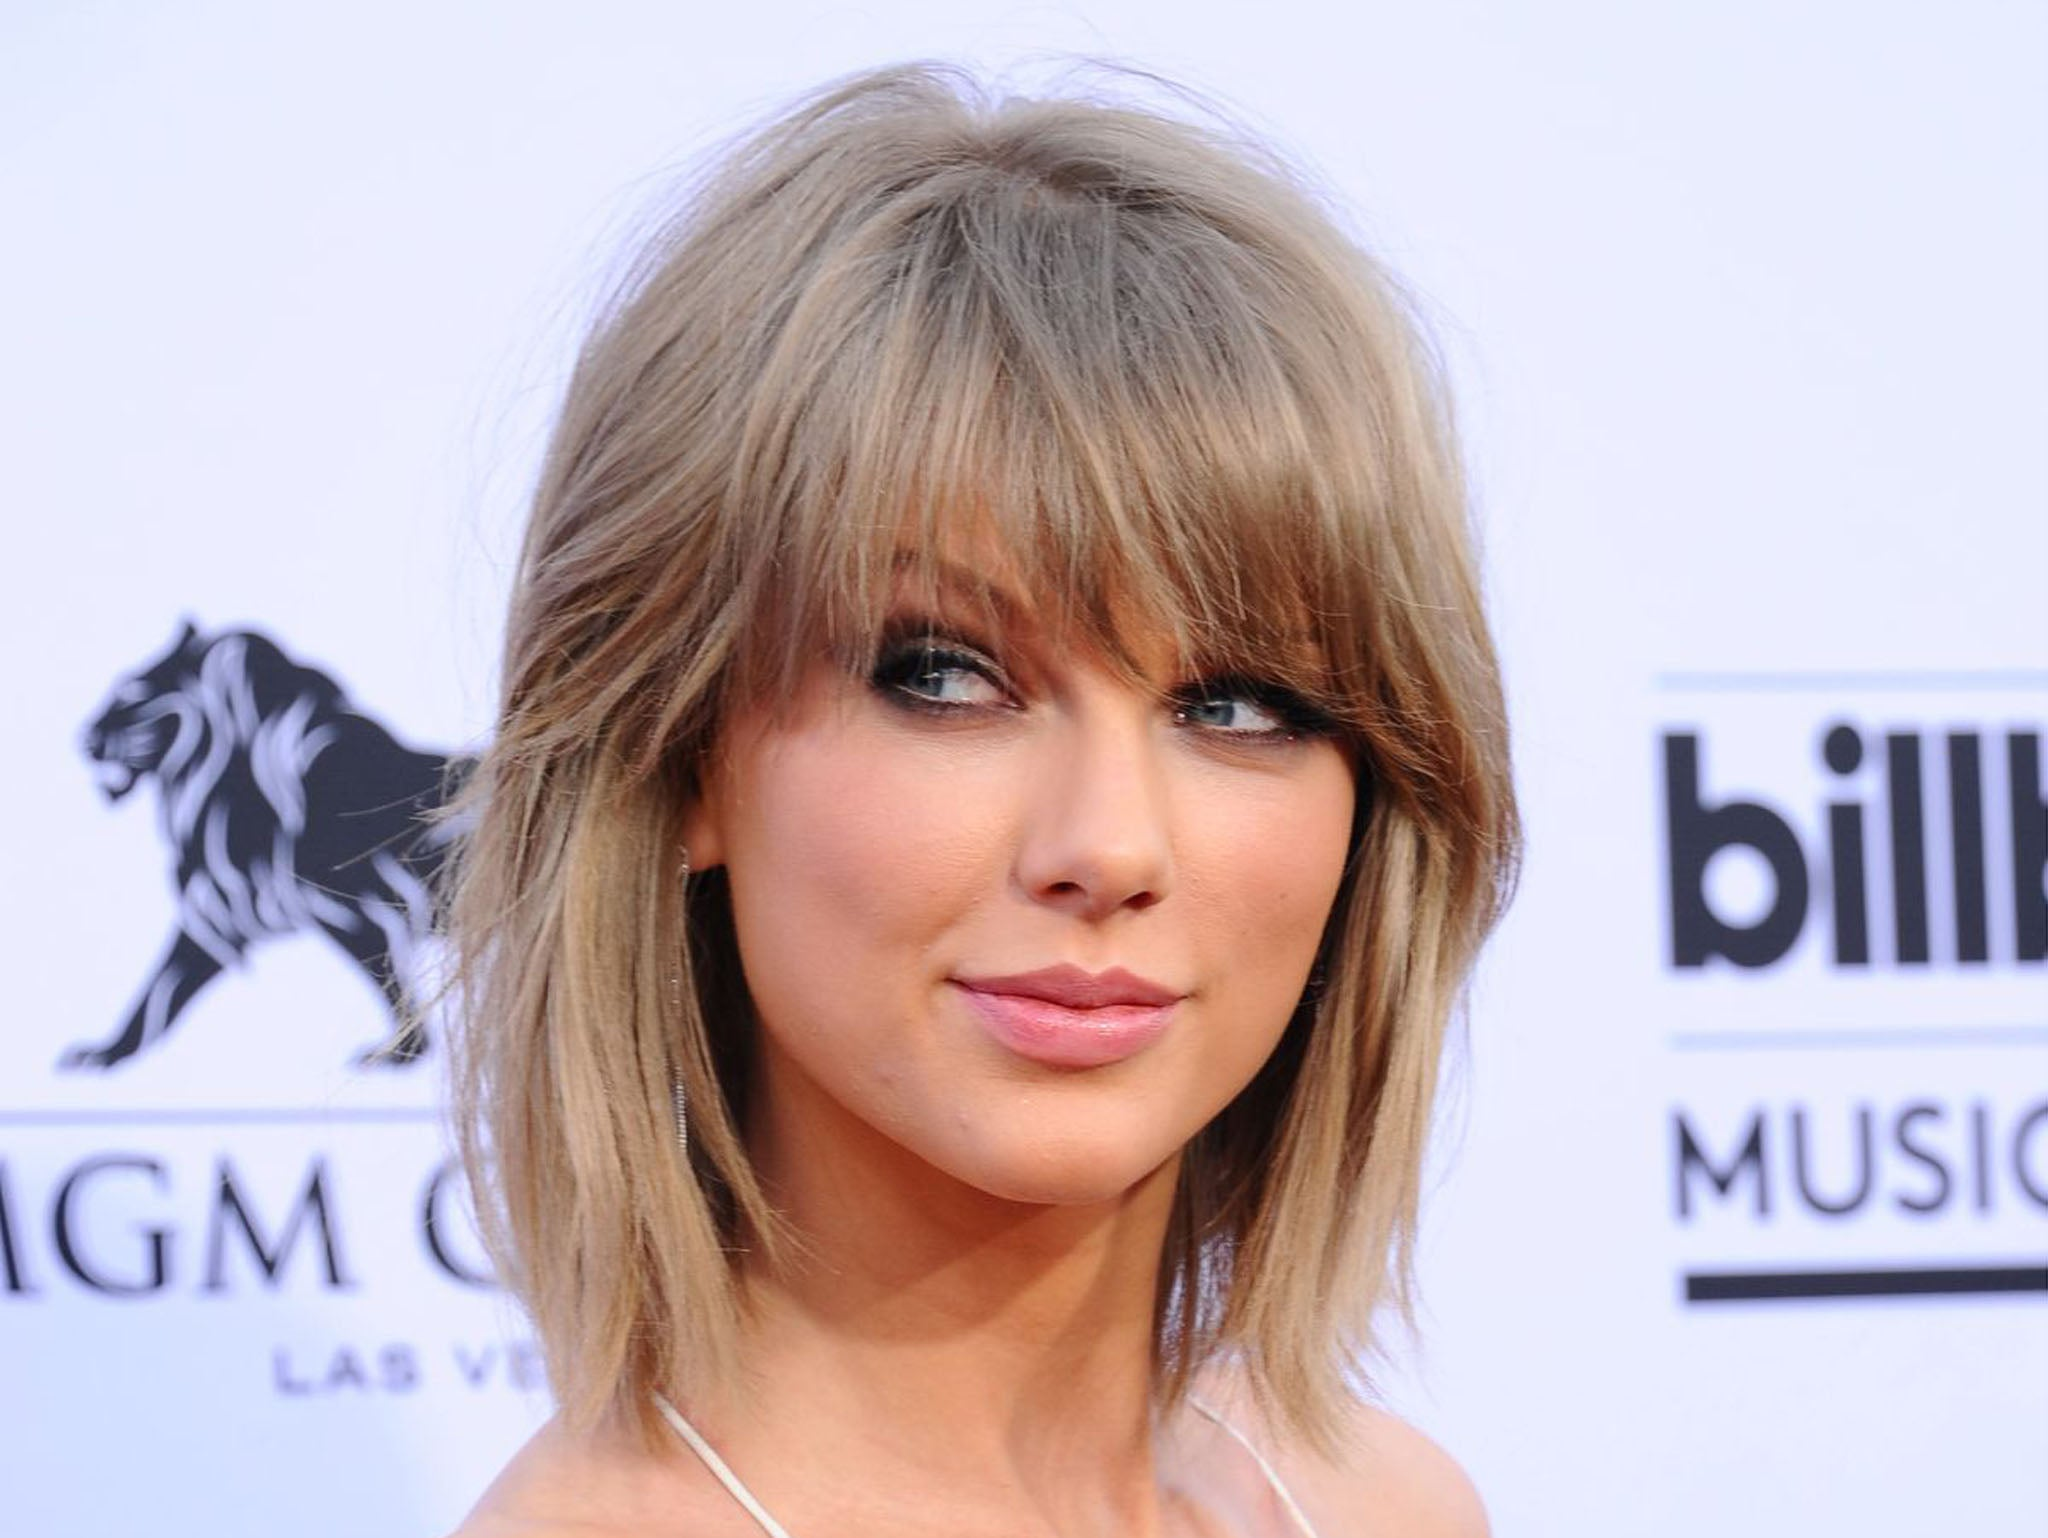 Taylor Swift And Calvin Harris Knock Beyonce And Jay Z Off The Top Spot For Earnings Last Year The Independent The Independent